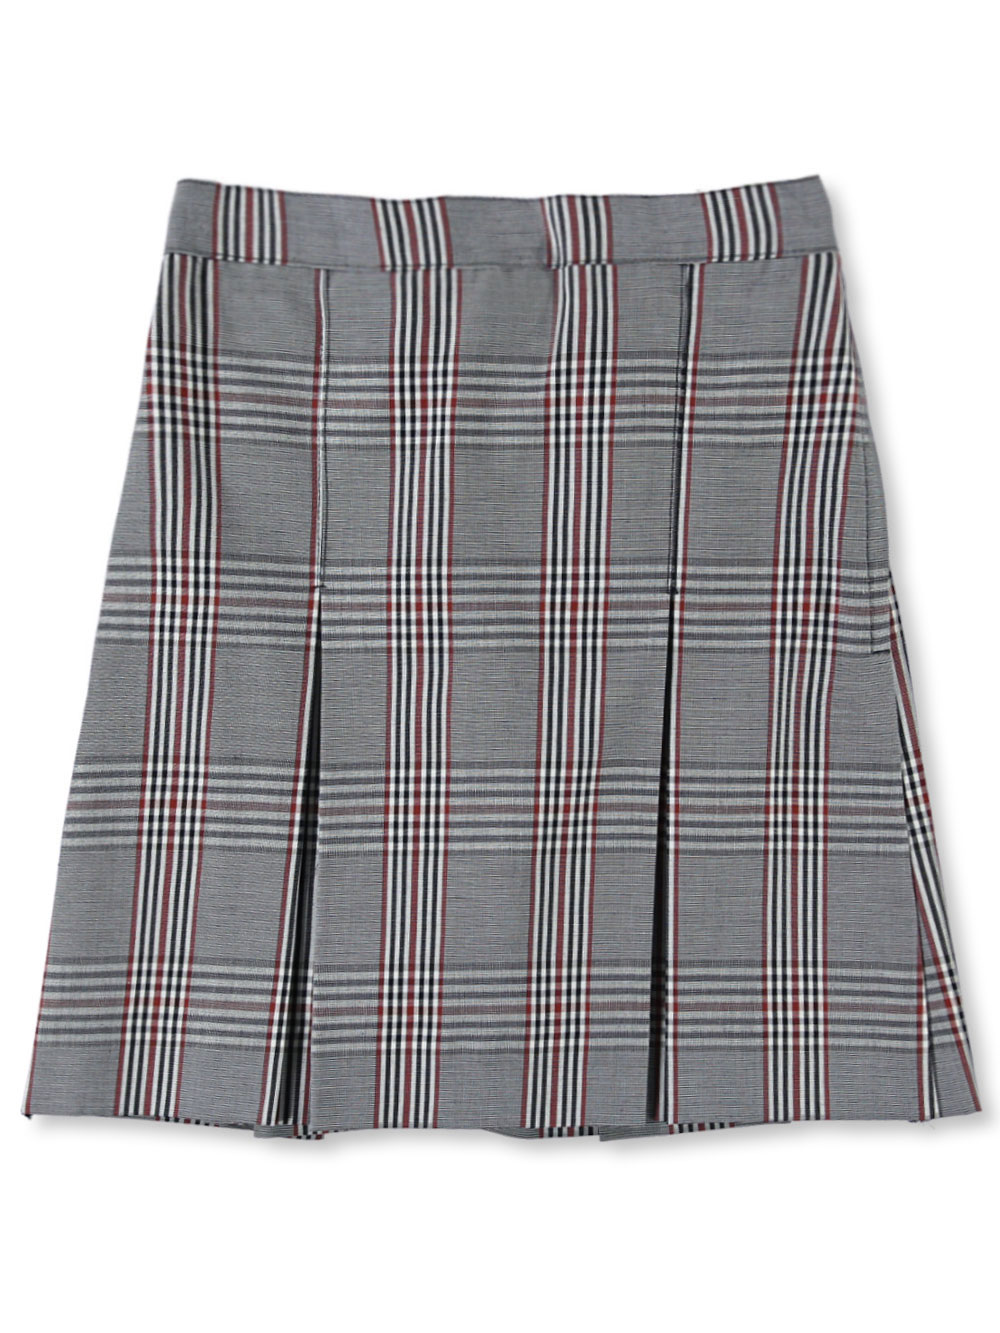 Plaid #08 Polycotton Skirts